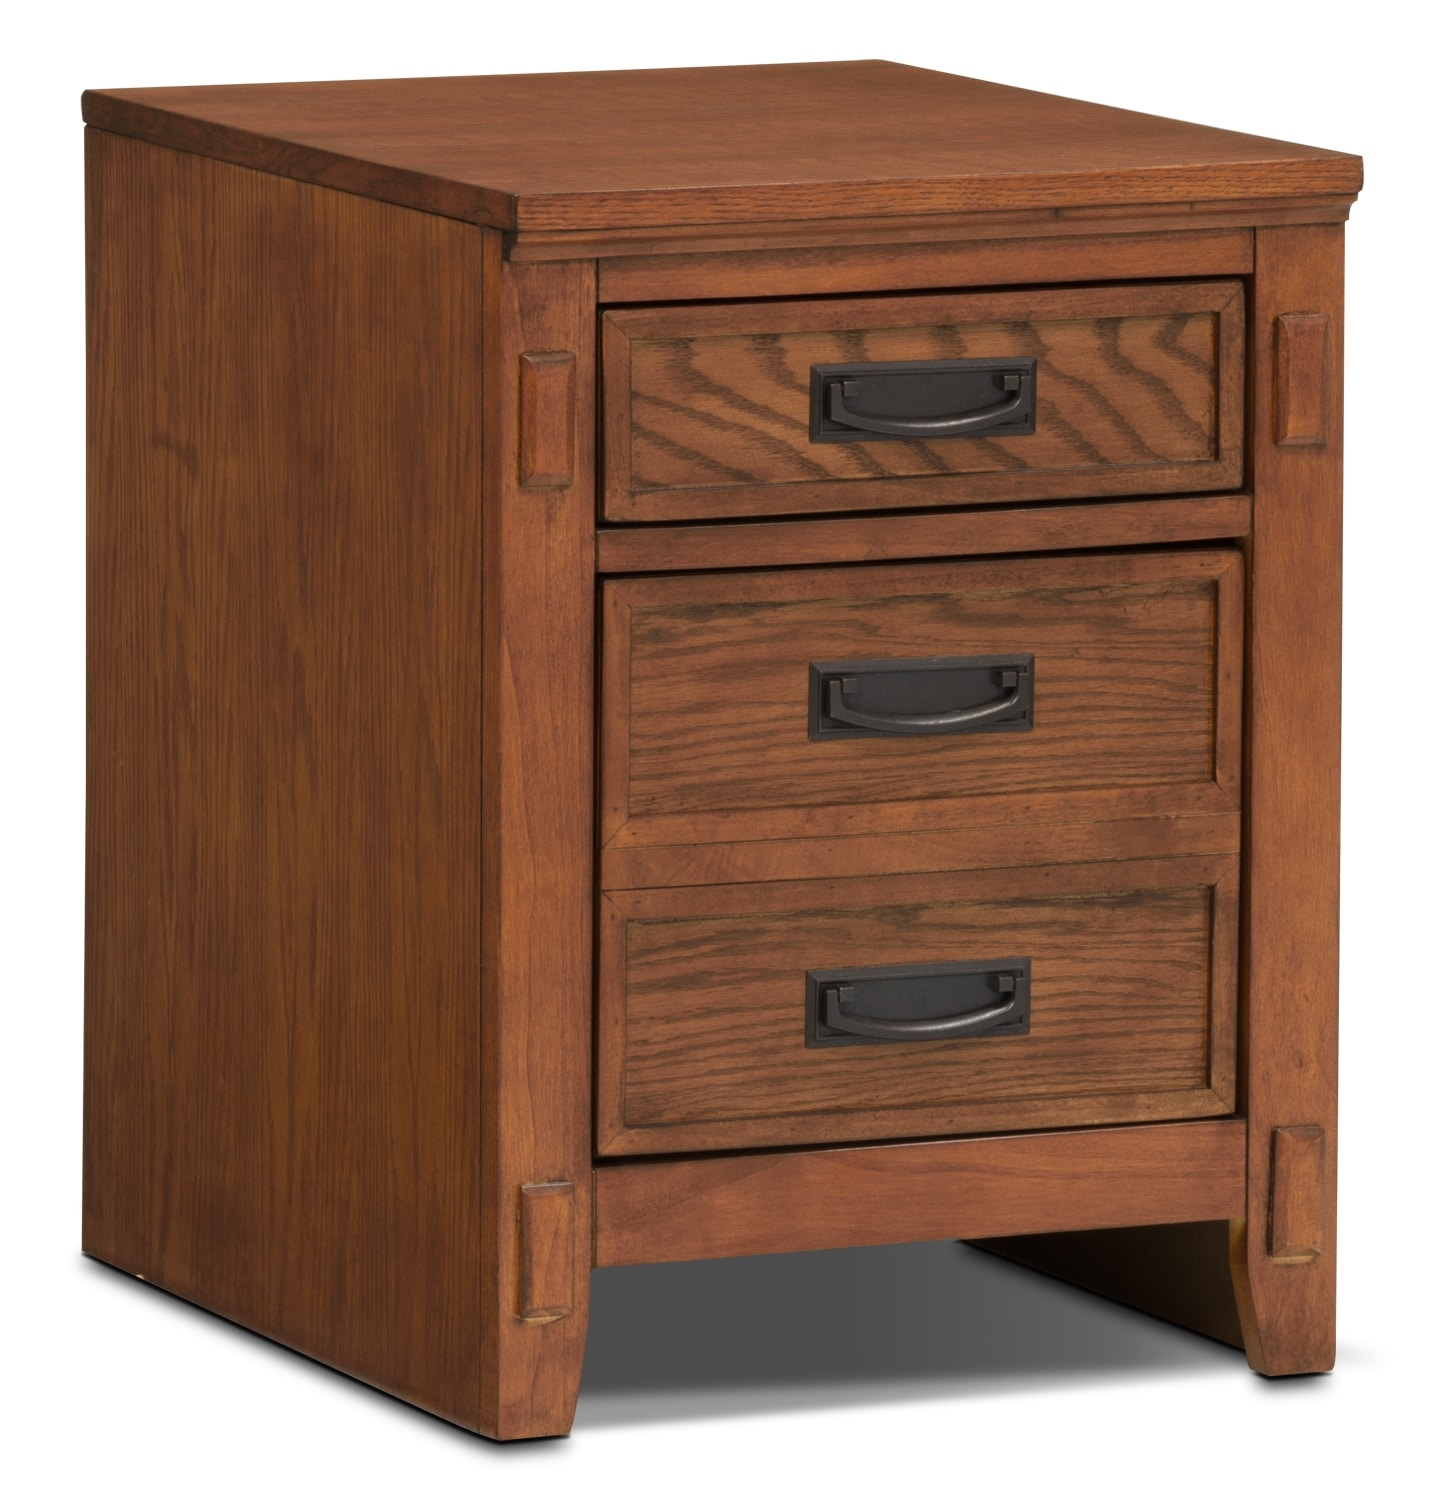 Perfect Fireking Fireproof 4 Drawer Legal File Cabinet NEW 42157  EBay